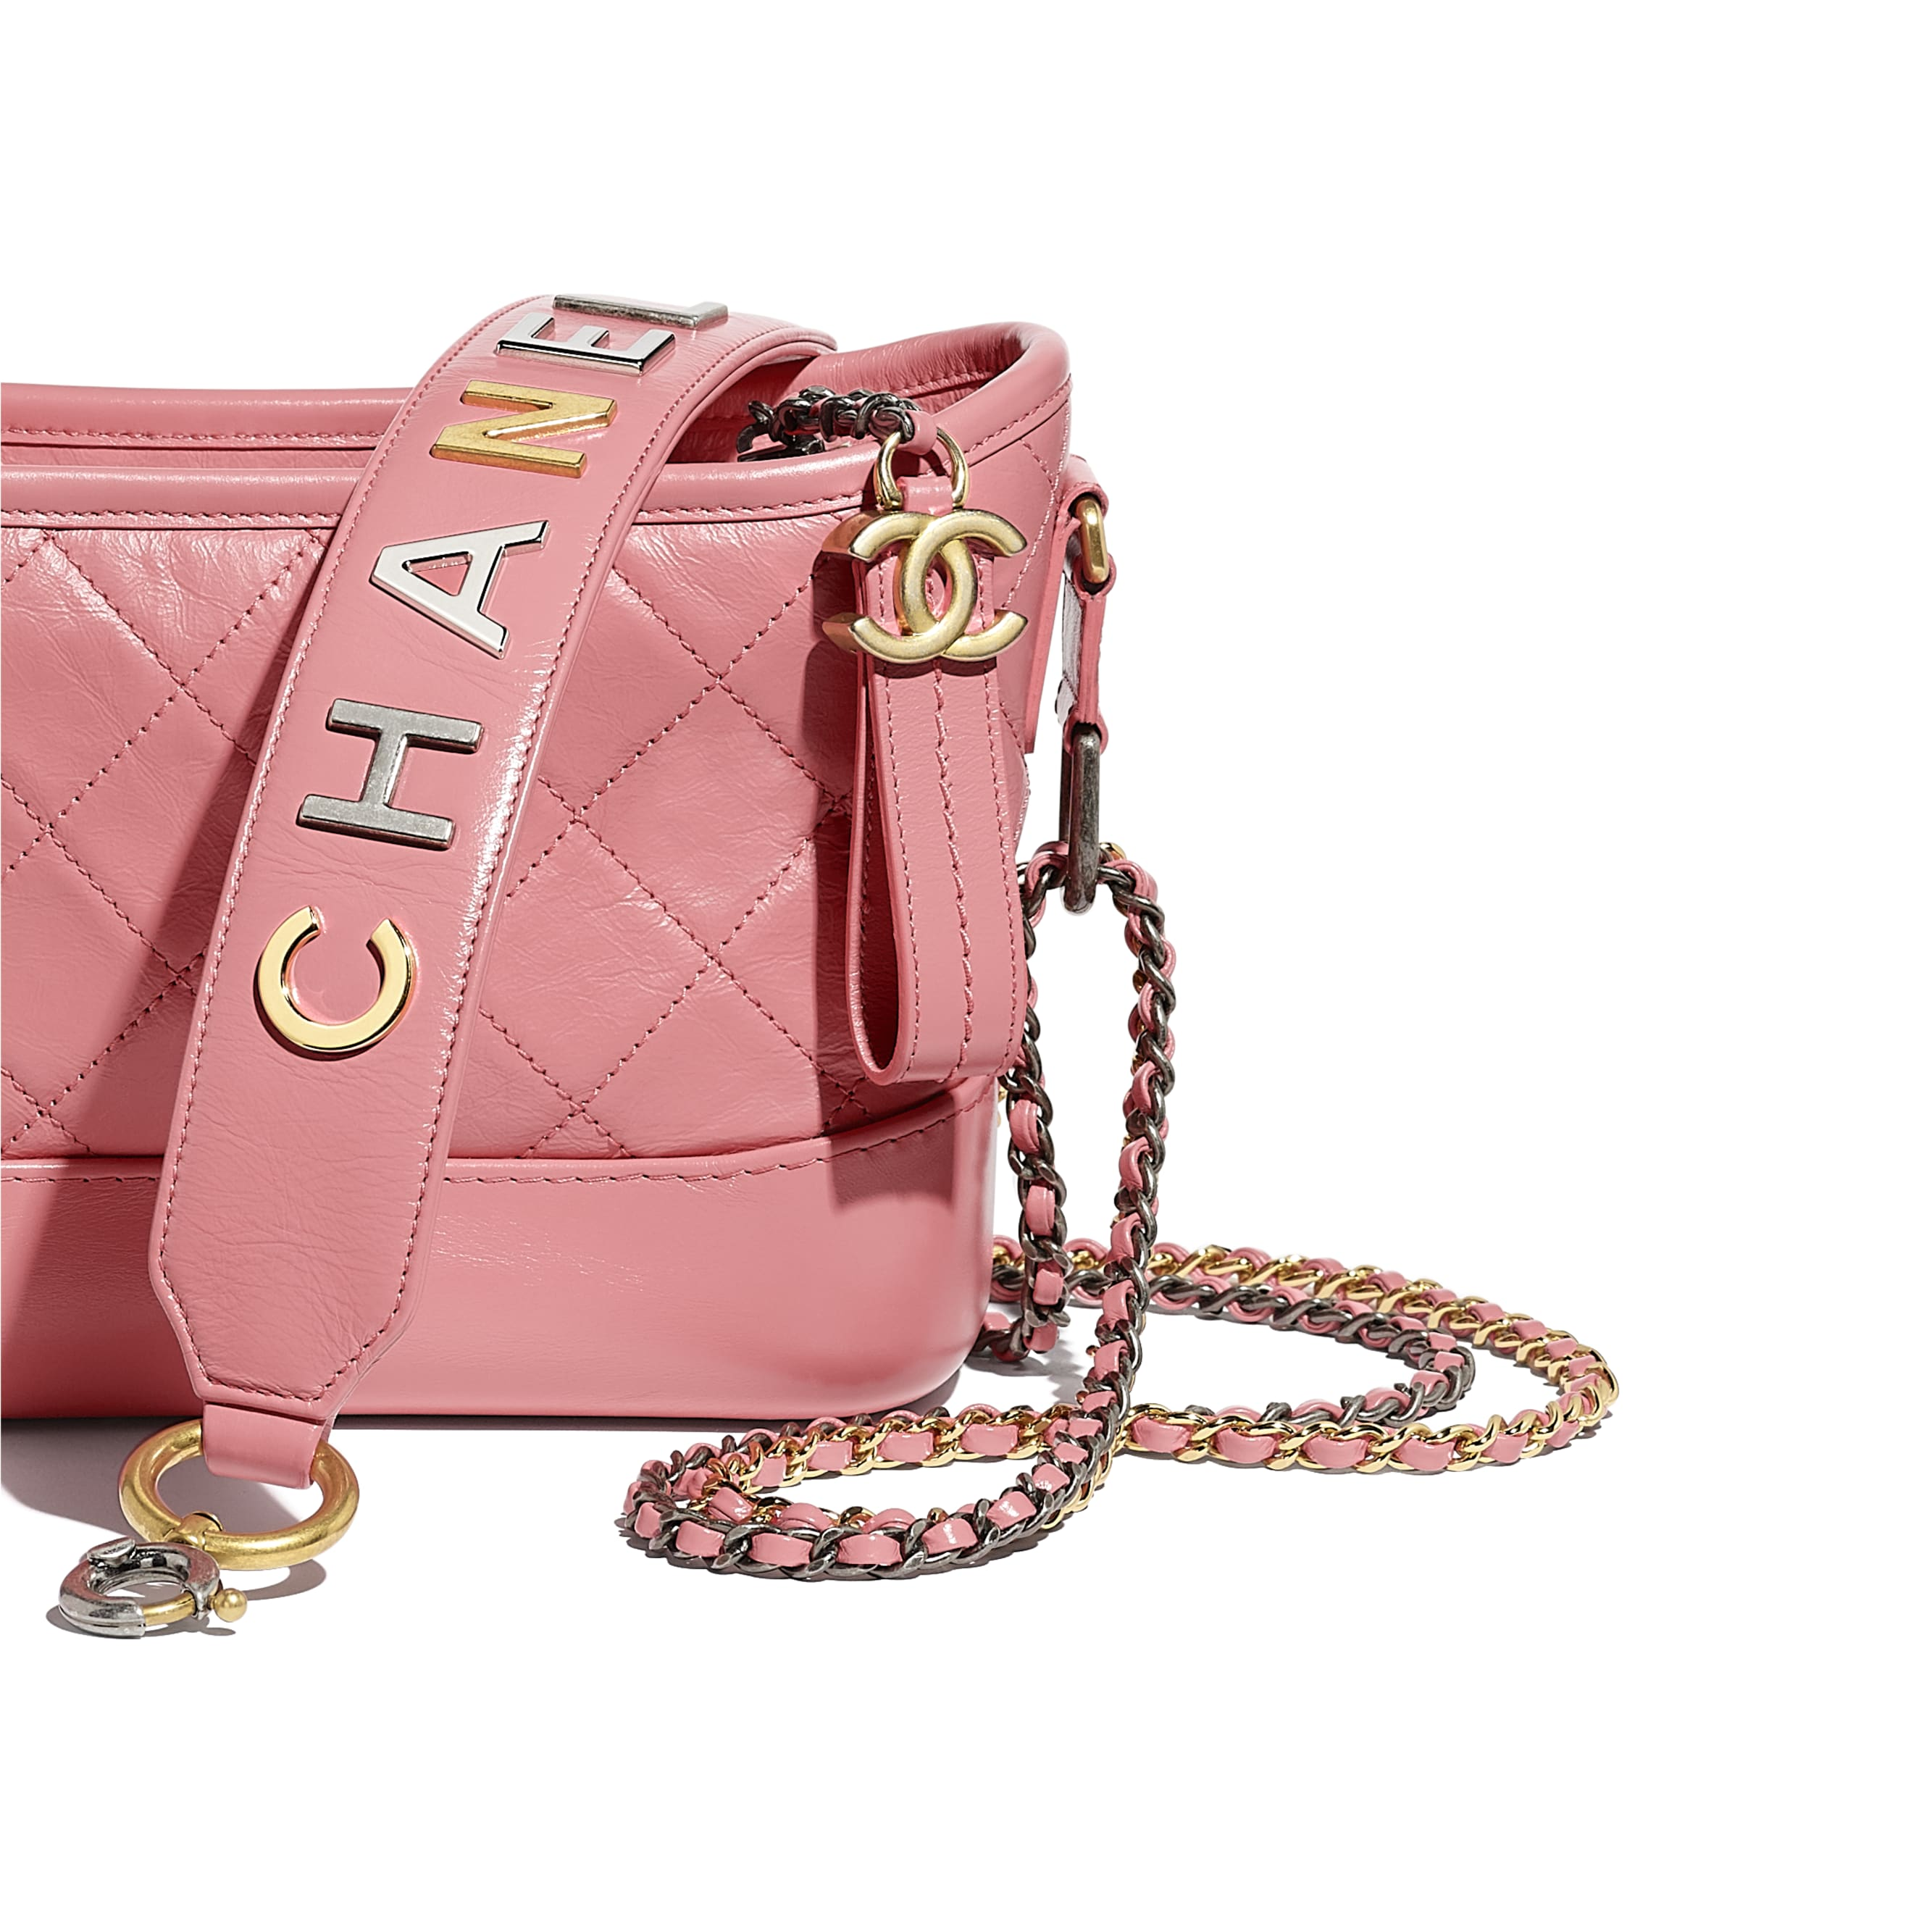 CHANEL'S GABRIELLE Small Hobo Bag - Pink - Aged Calfskin, Smooth Calfskin, Gold-Tone, Silver-Tone & Ruthenium-Finish Metal - CHANEL - Extra view - see standard sized version